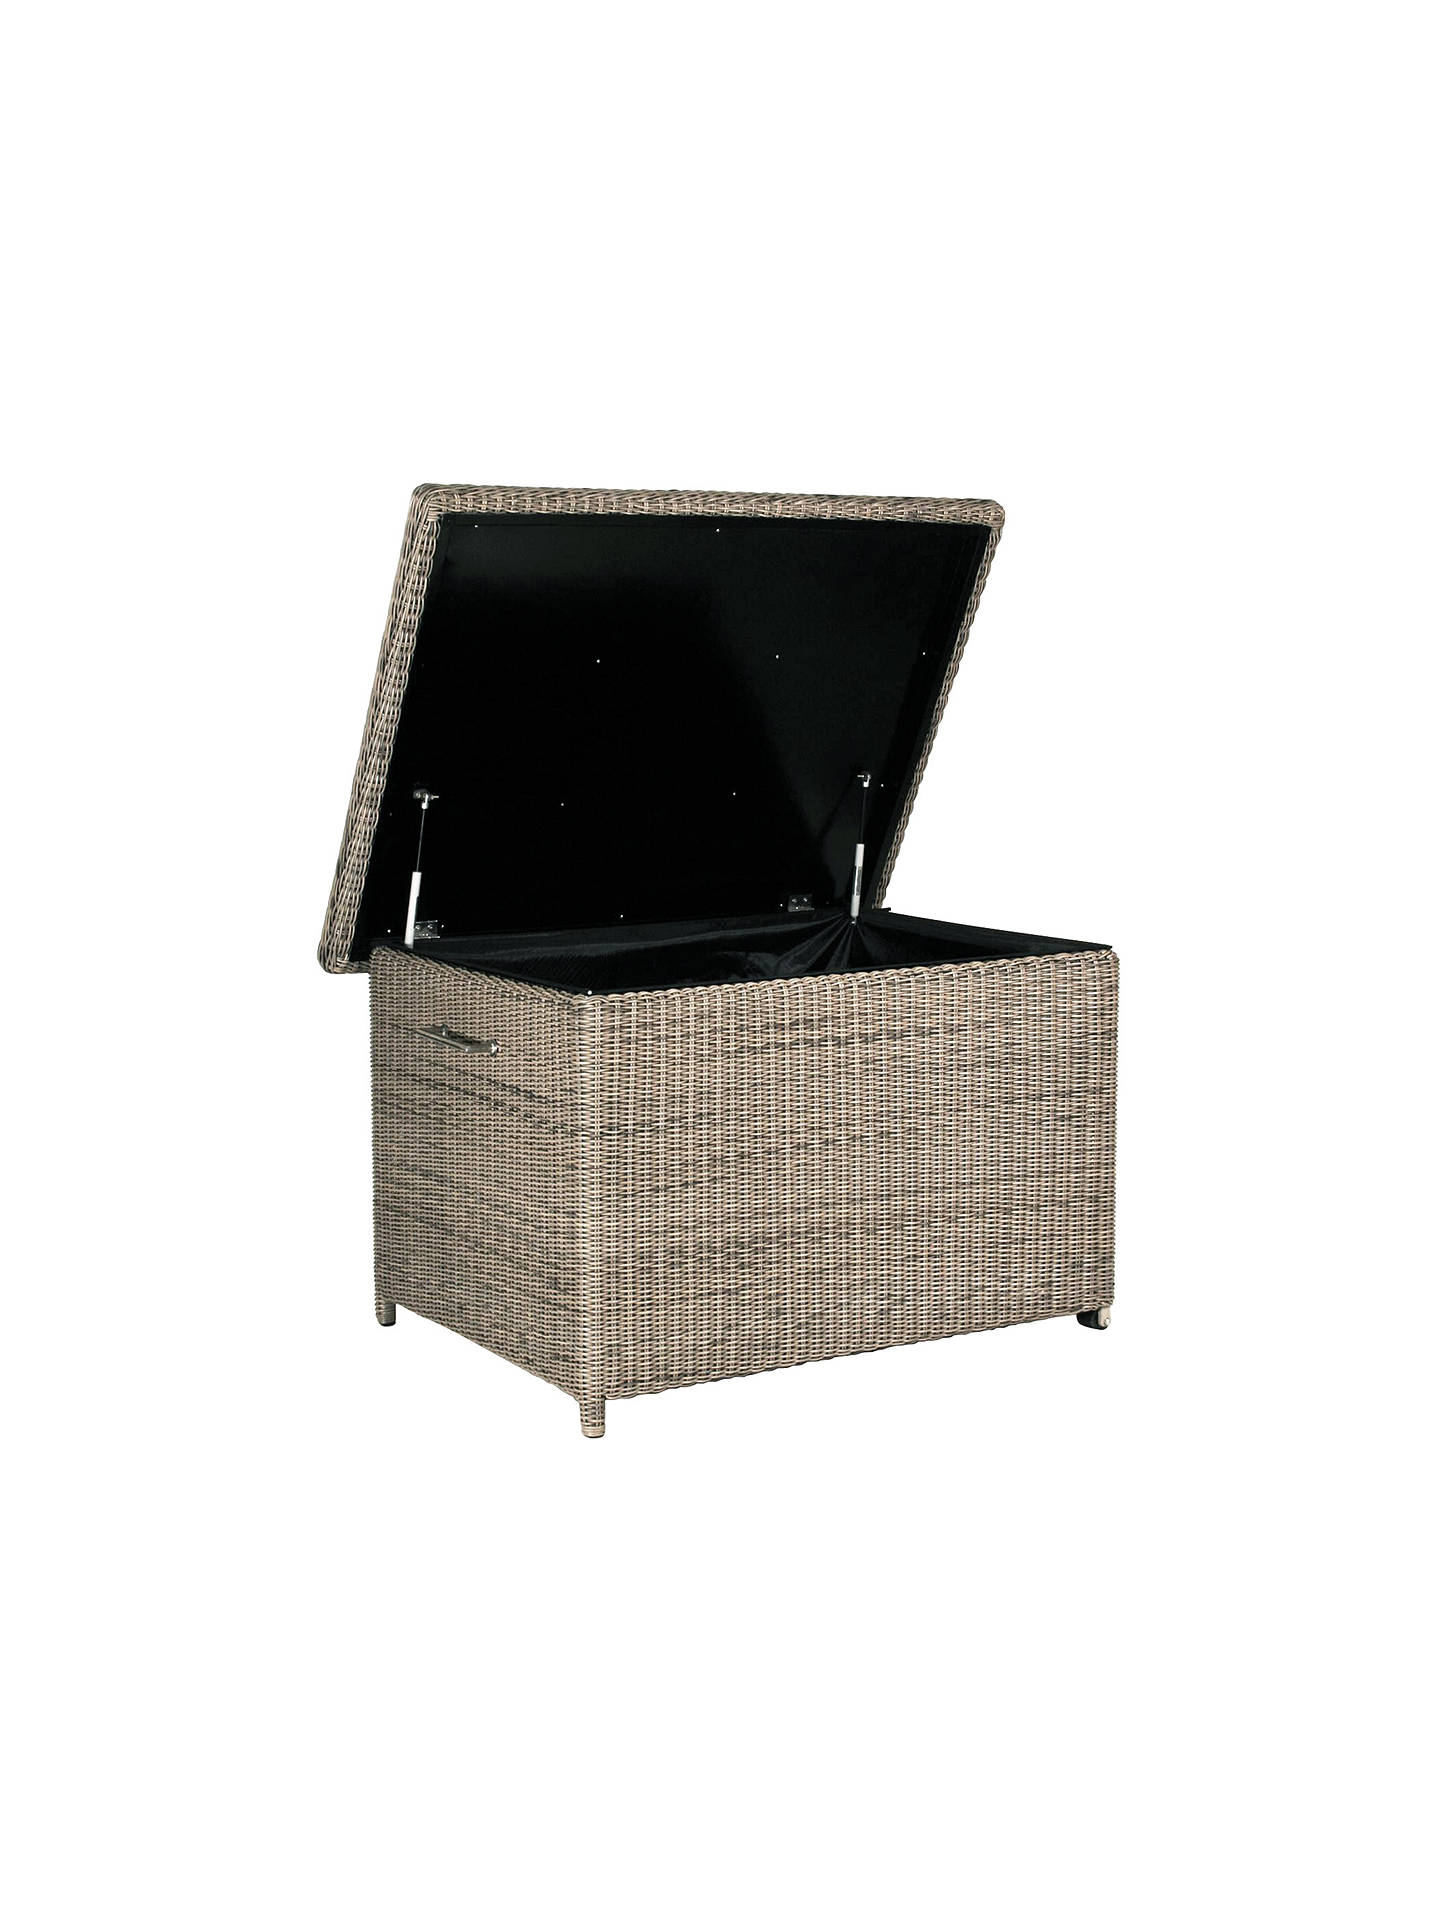 Buy4 Seasons Outdoor Valentine Outdoor Woven Cushion Box, Praia Online at johnlewis.com